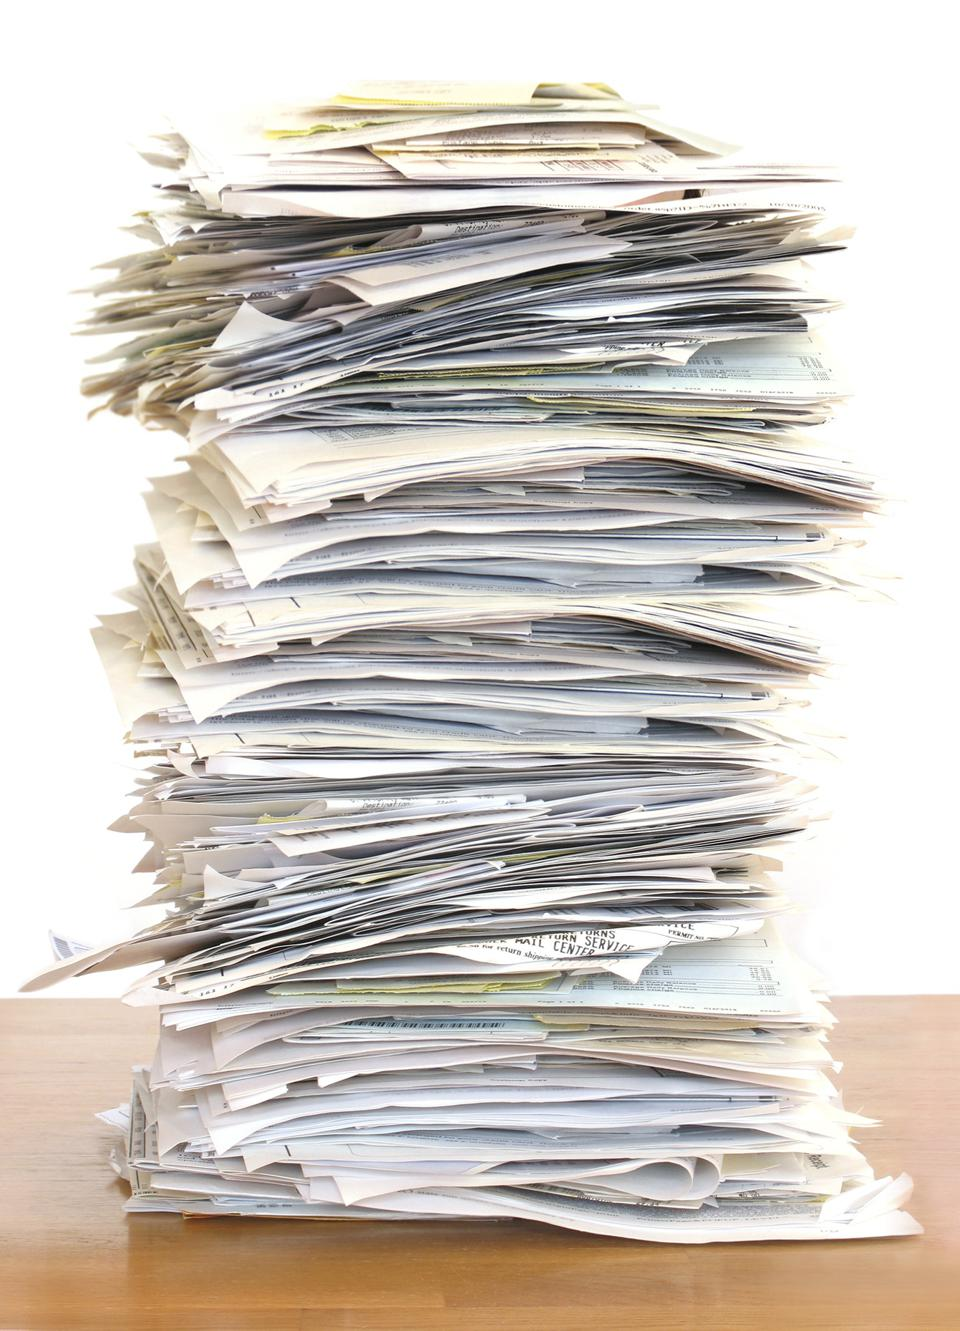 If possible, e-file your tax return. The IRS is swimming in paper.